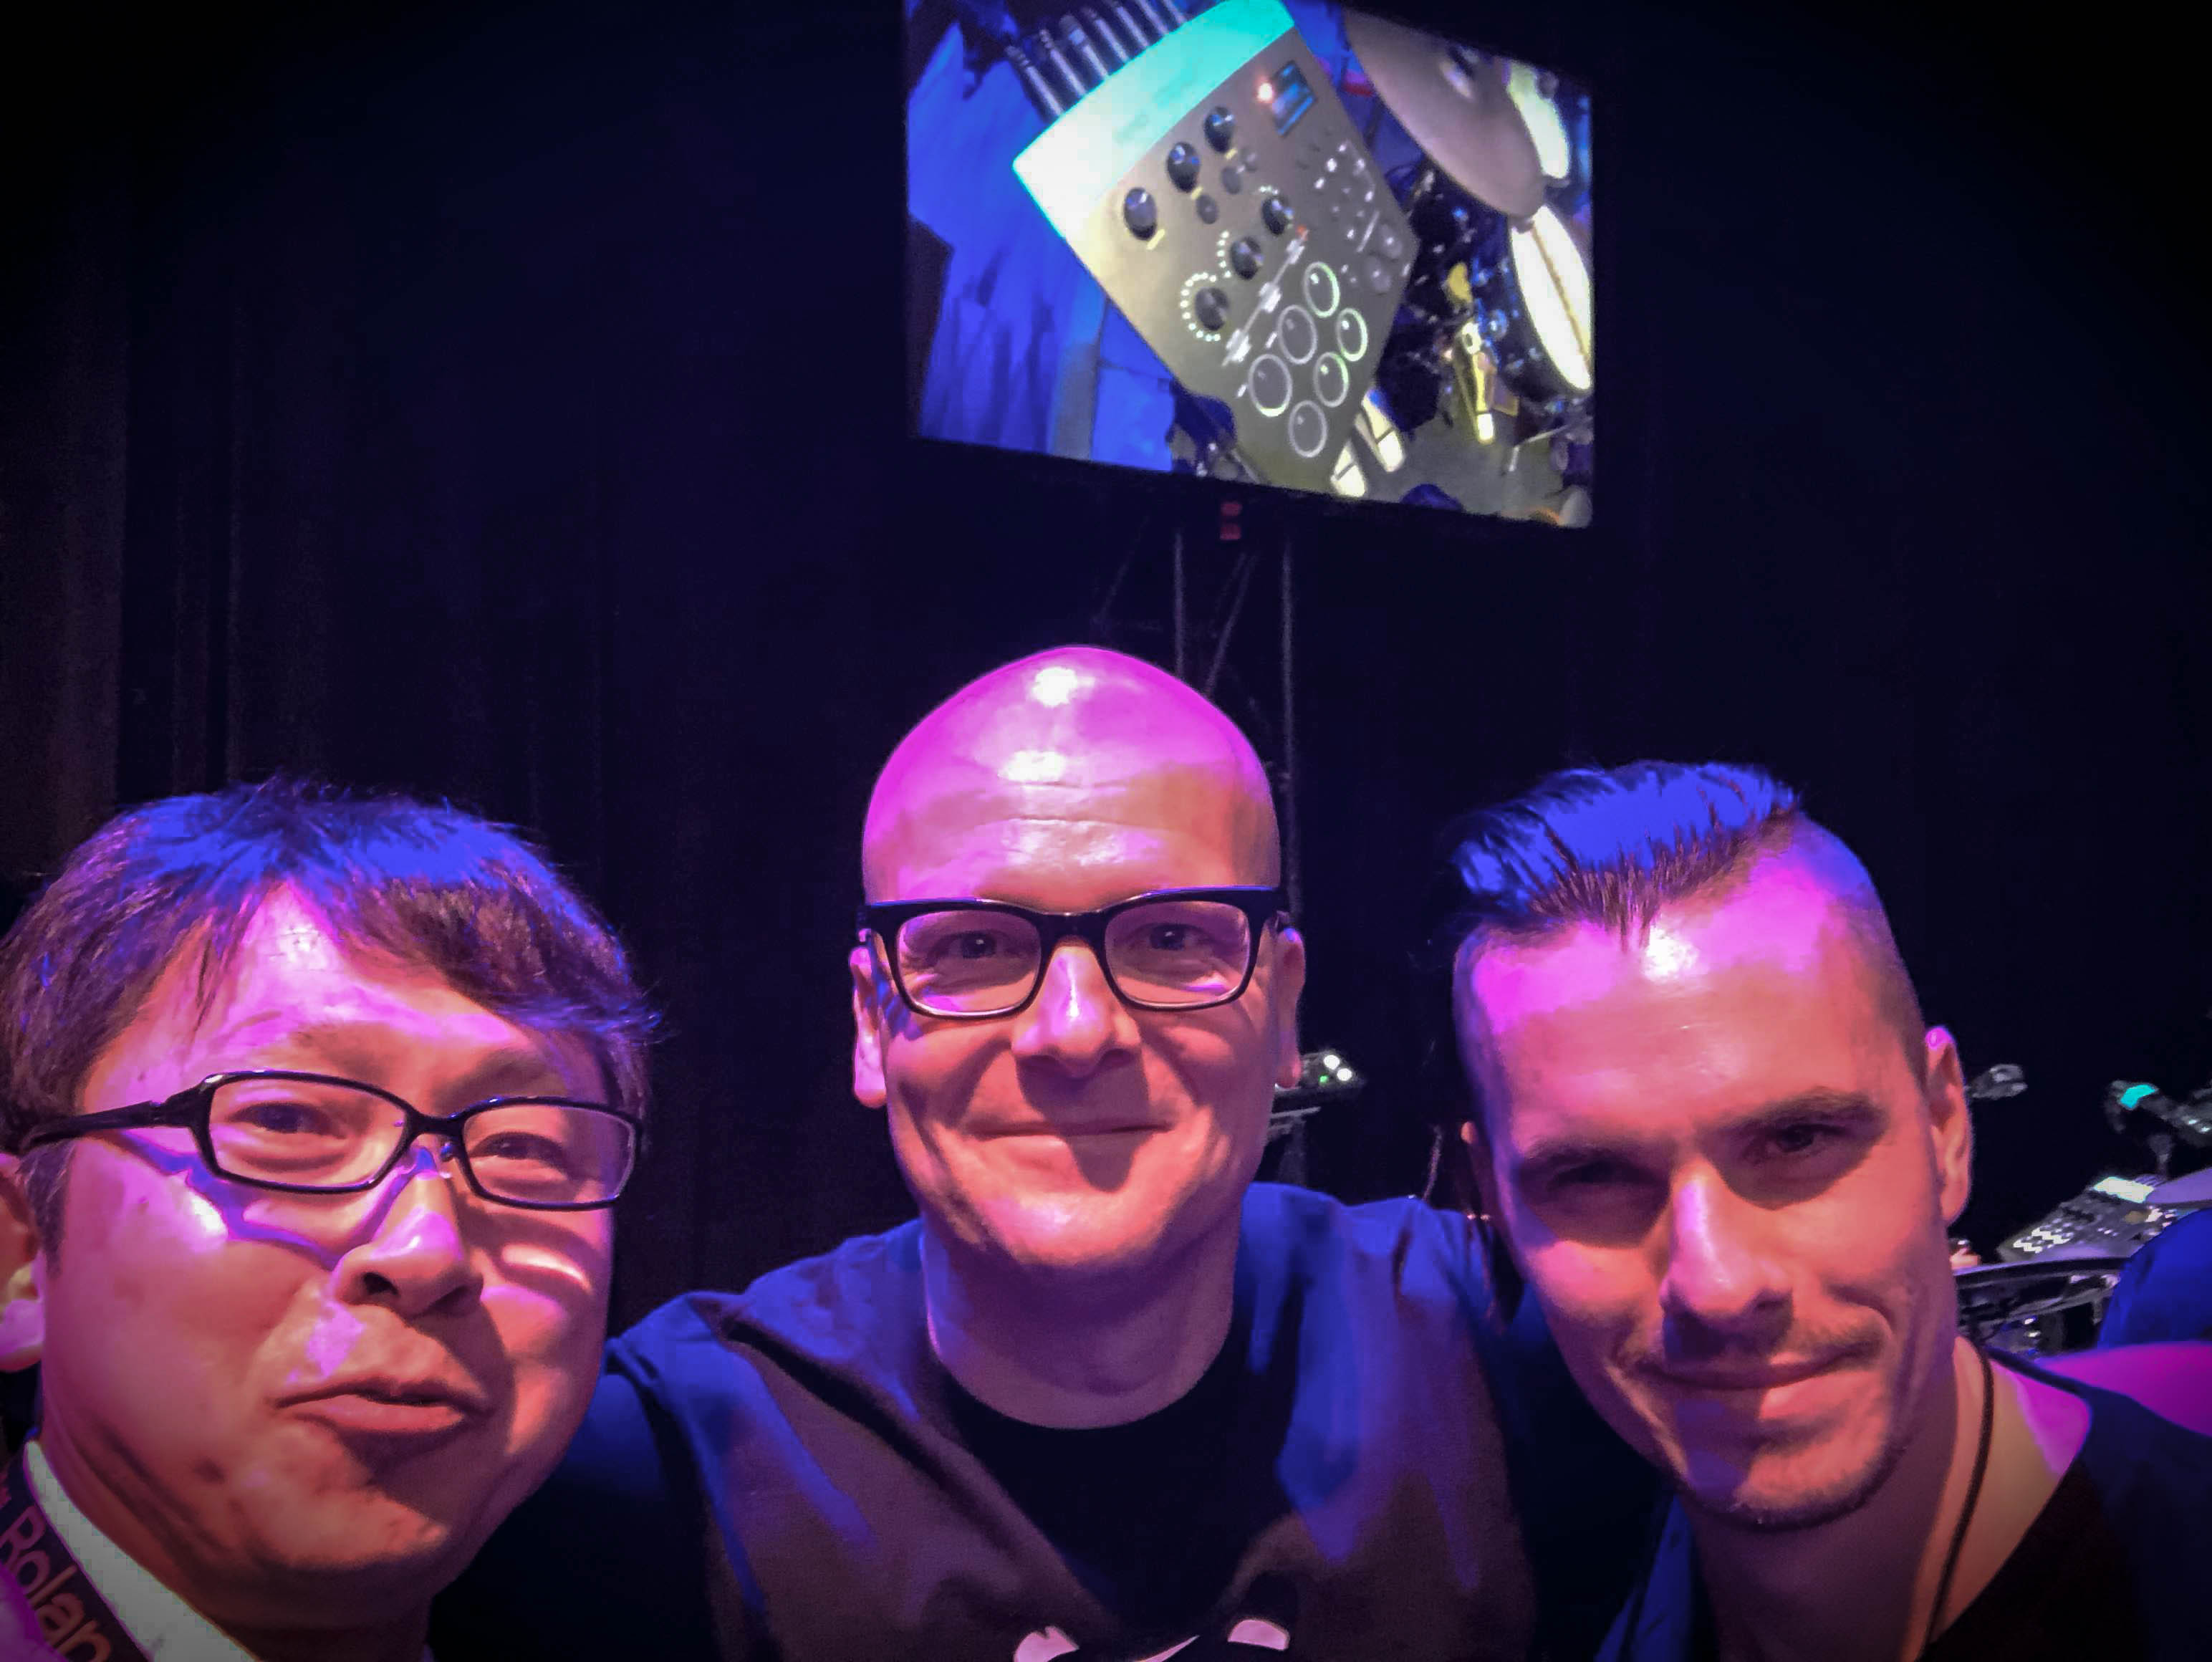 Oli Beaudoin (2018) - Visit at NAMM - with Nishi of Roland Japan and Michael Shack